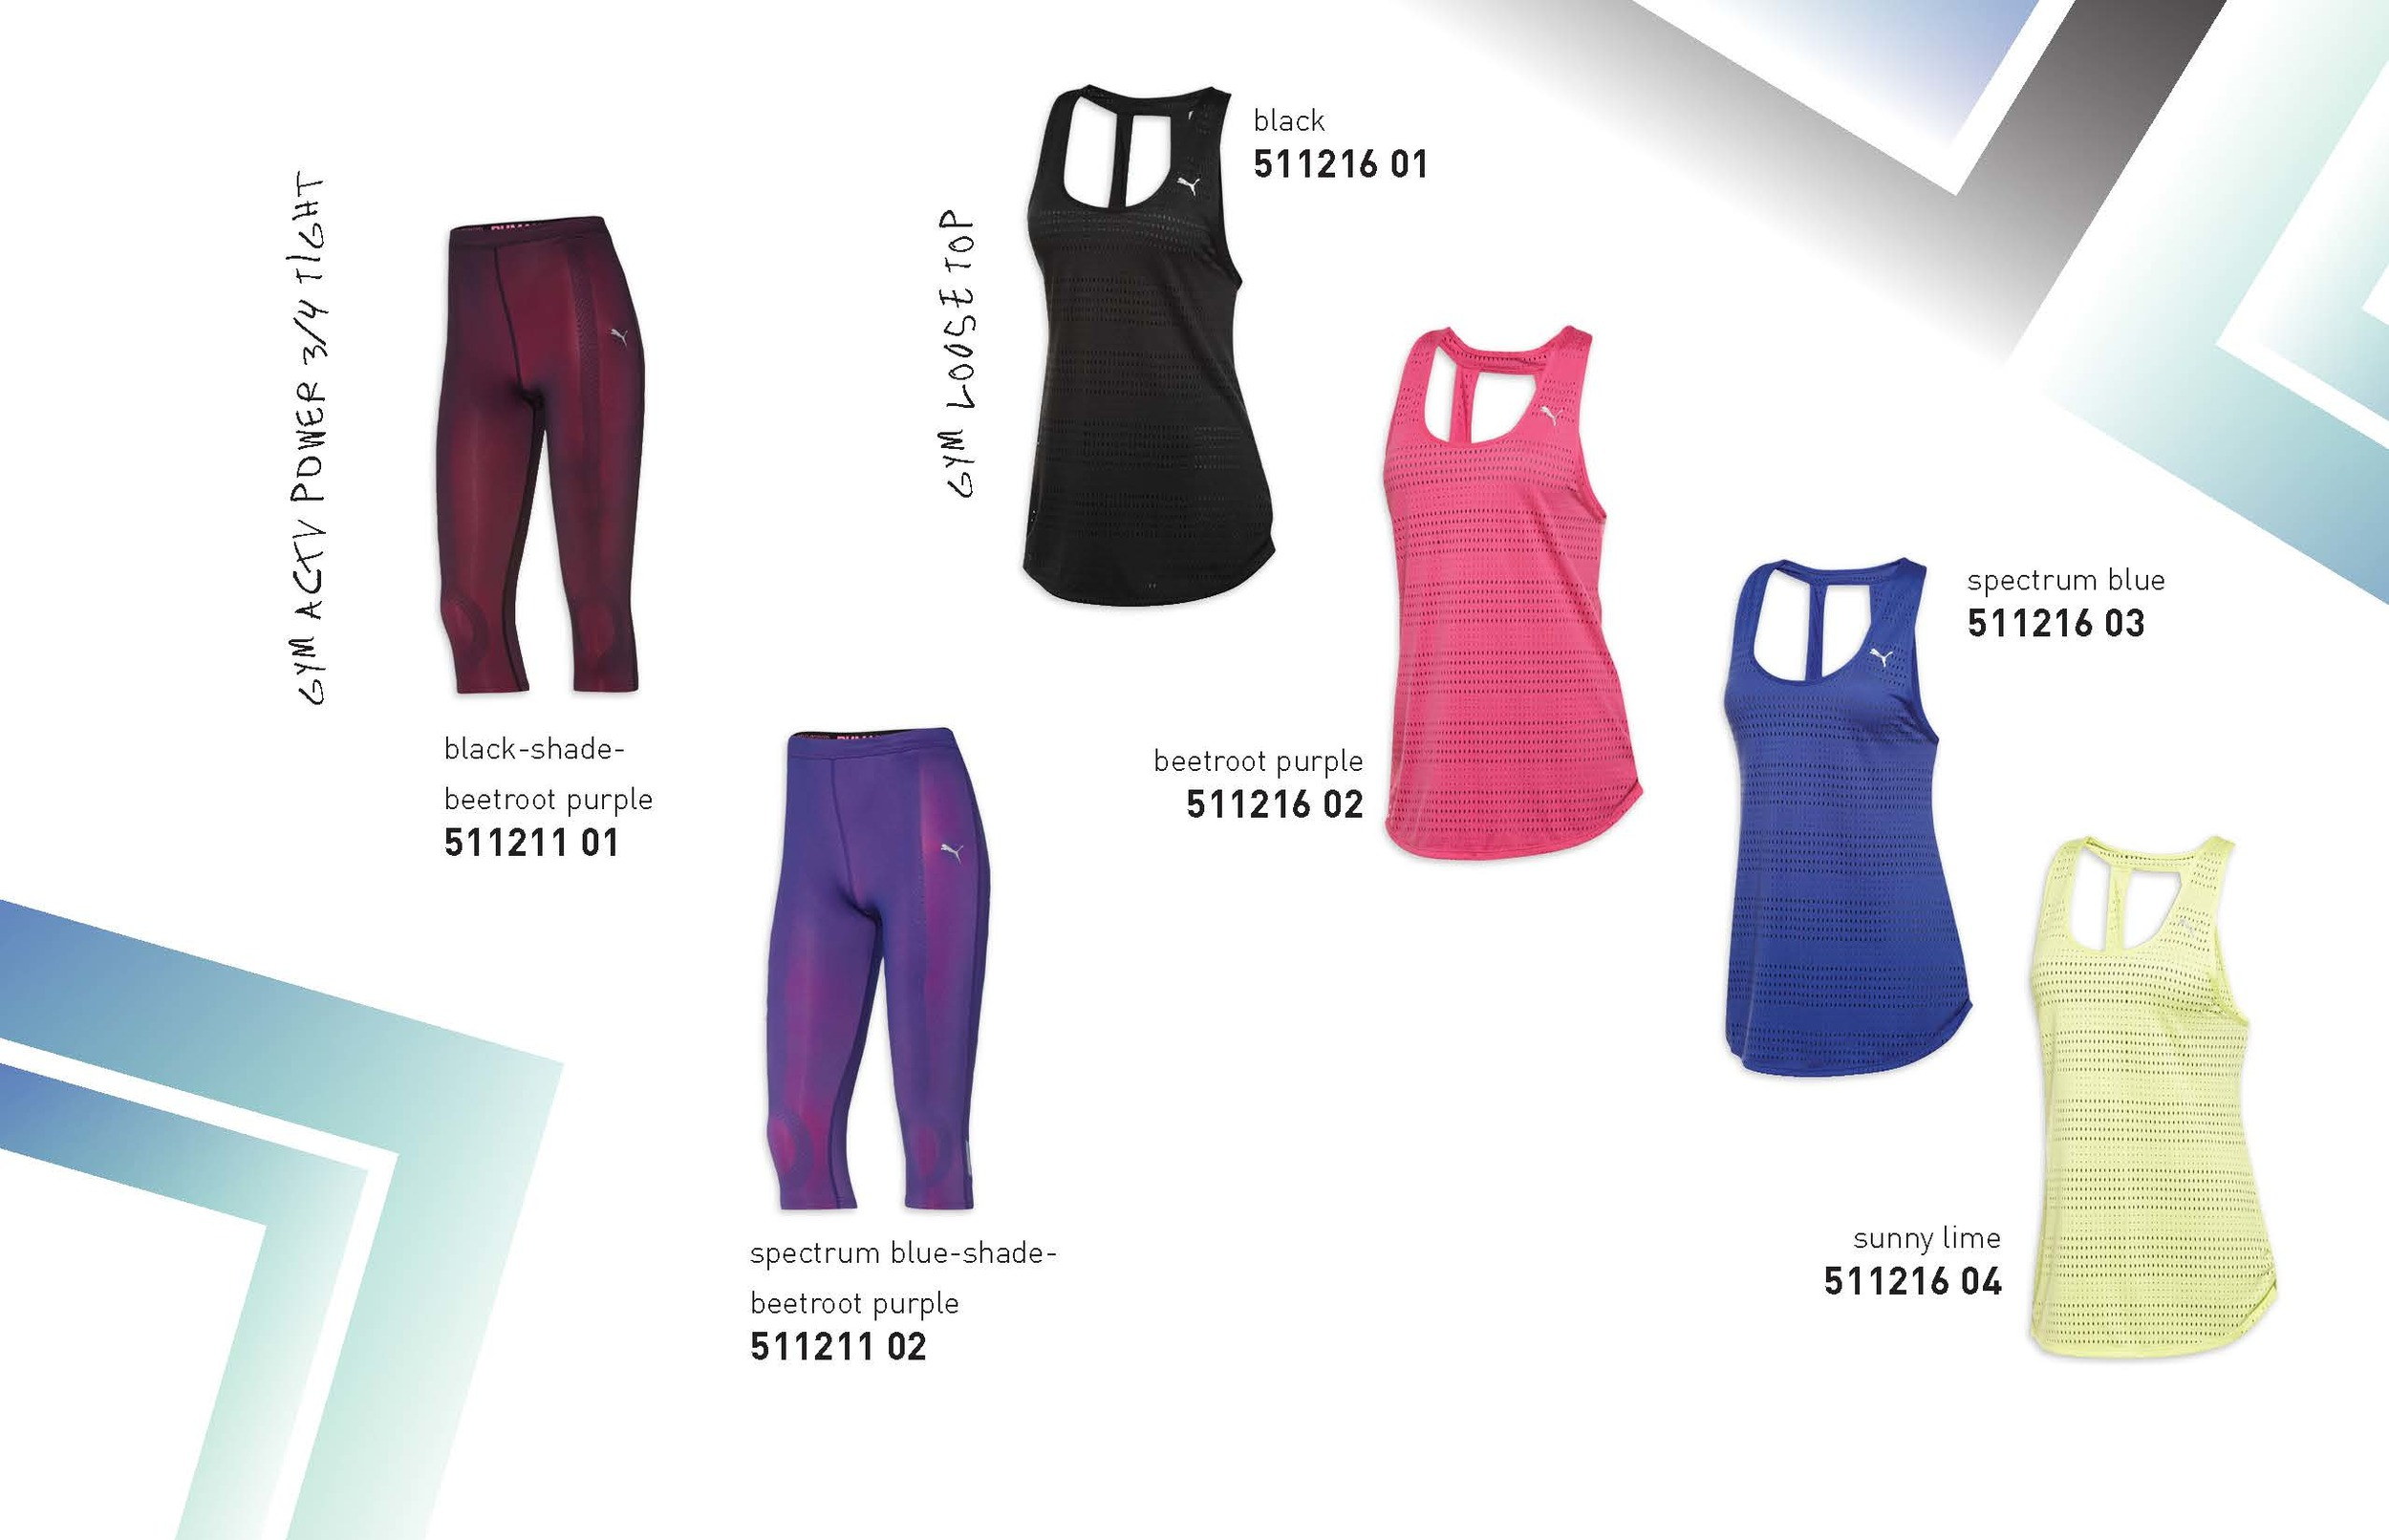 PUMA_booklet_7-30-13_HIRES_view_Page_19.jpg